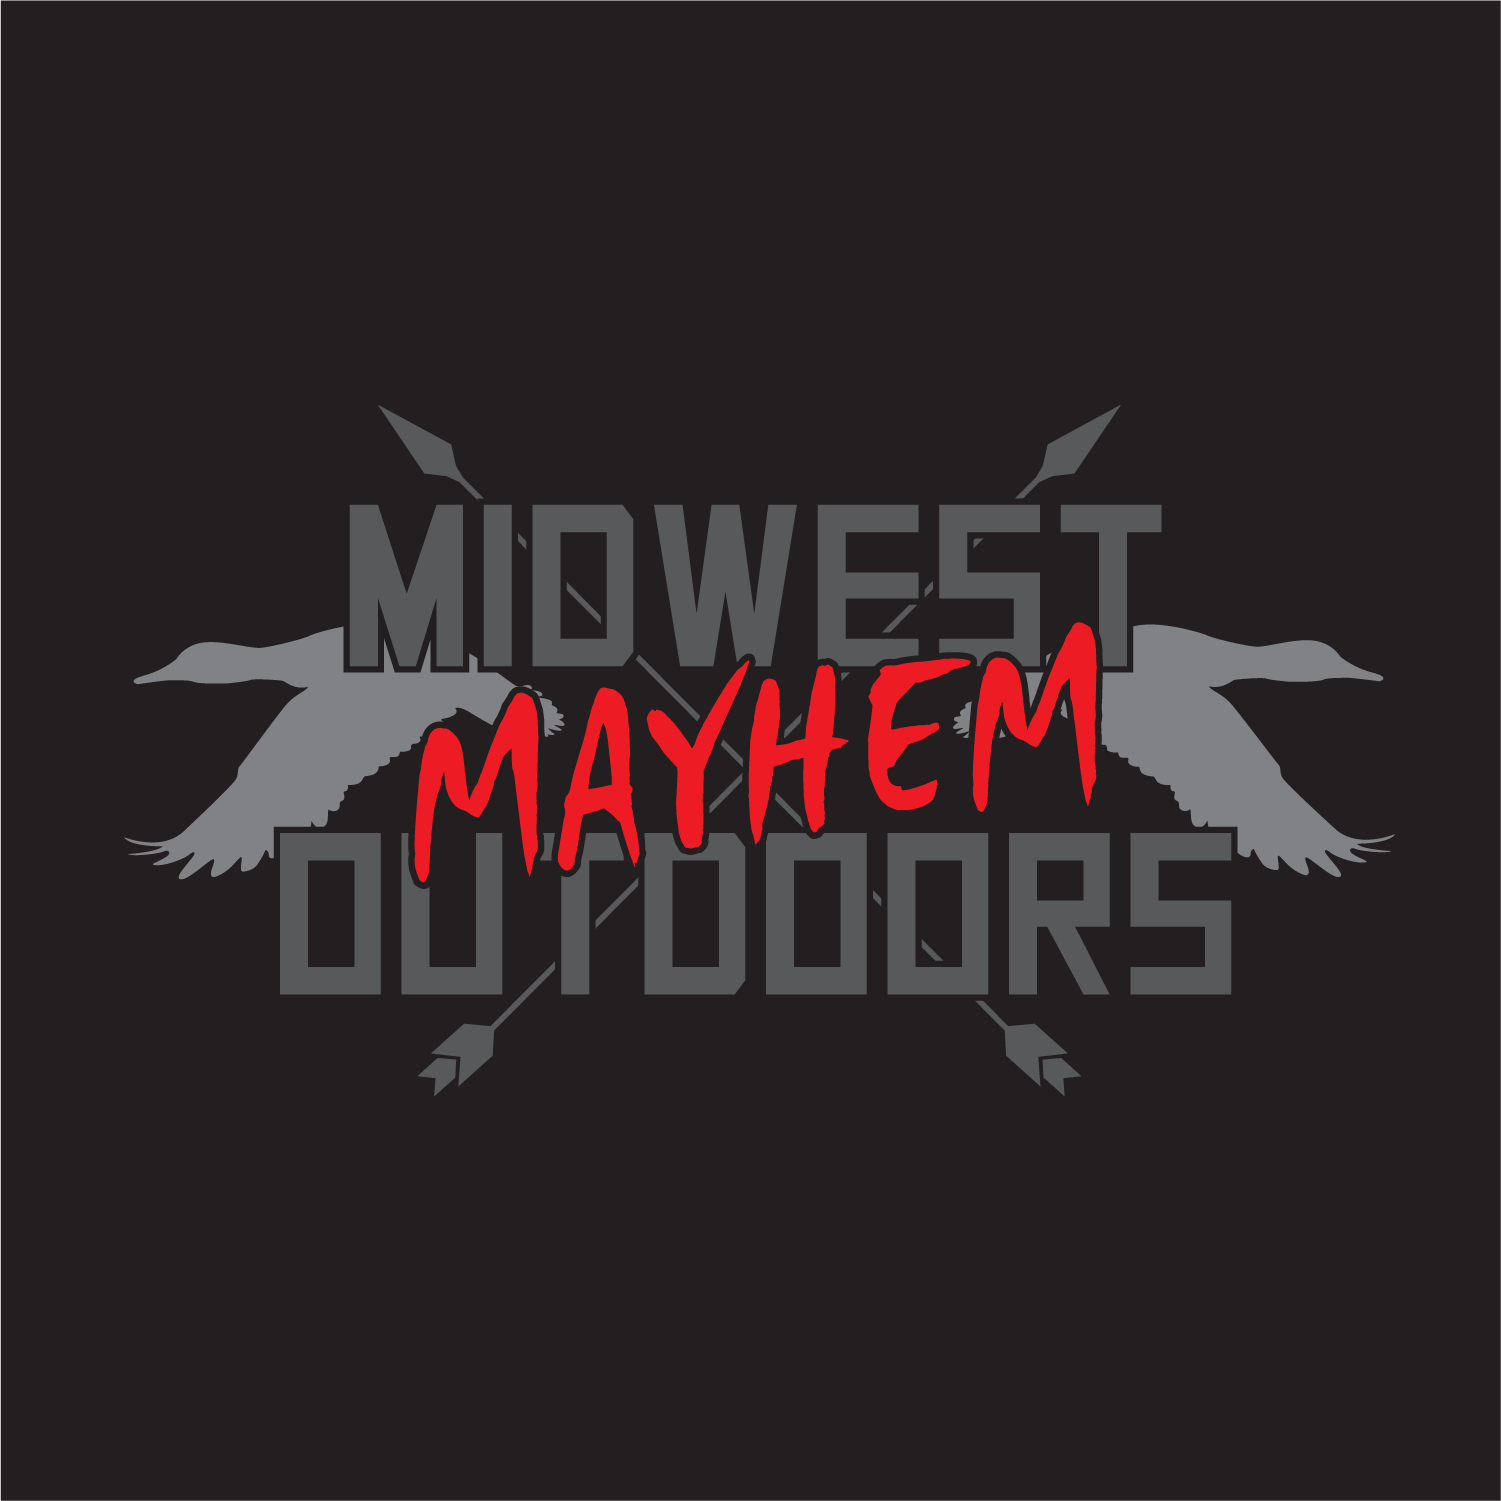 Midwest Mayhem Outdoors